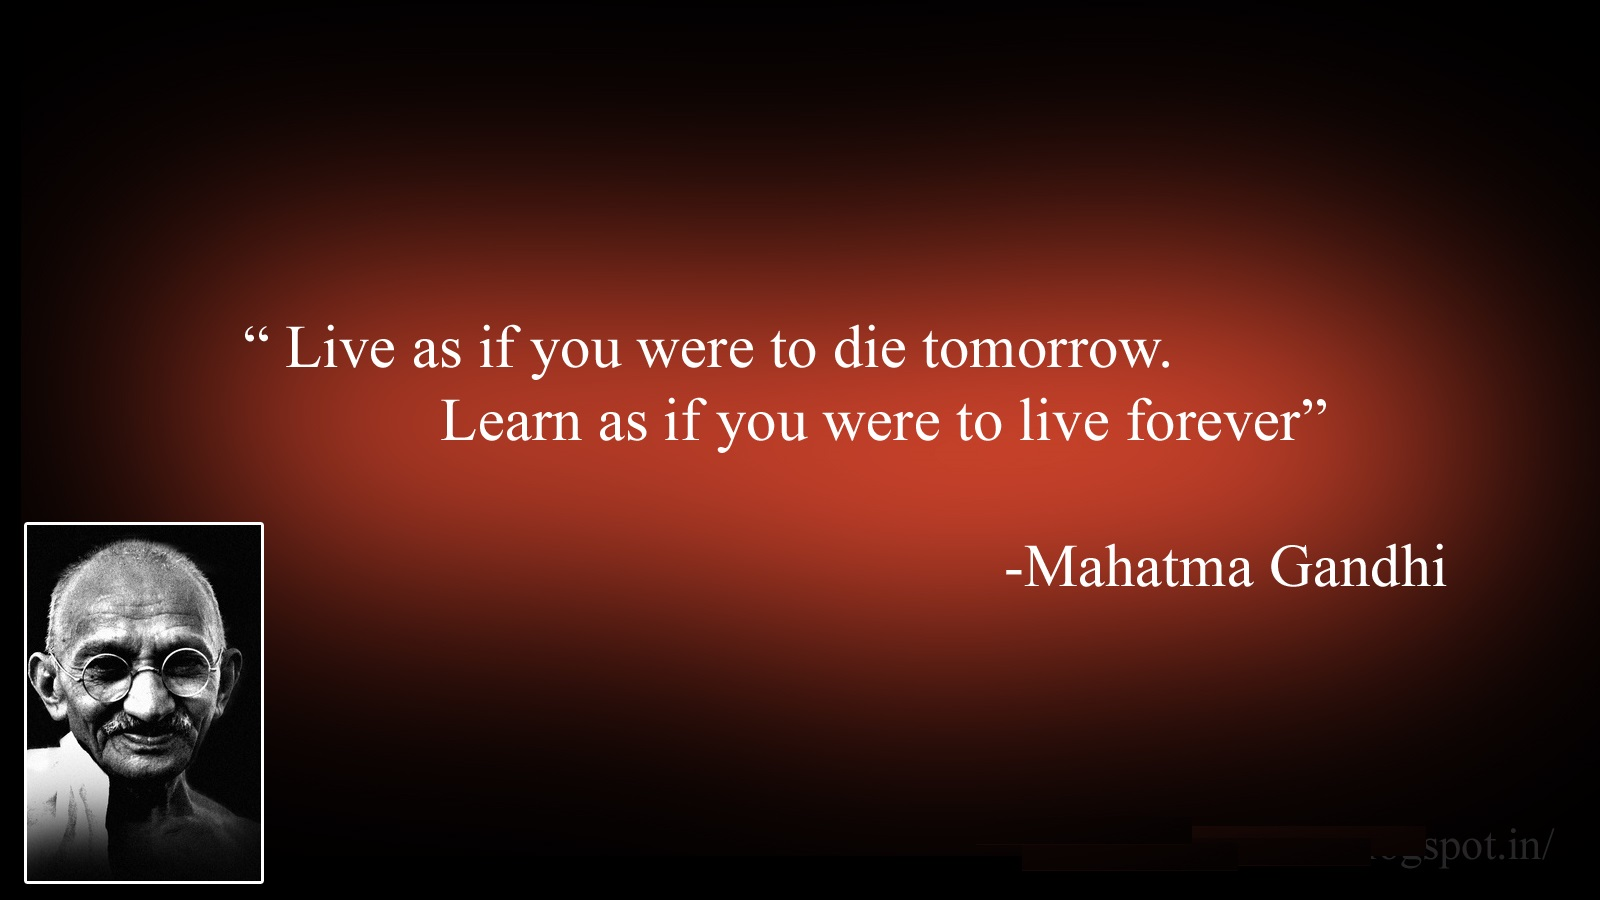 Ghandi Quotes About Life Quotes About Life 1600x900